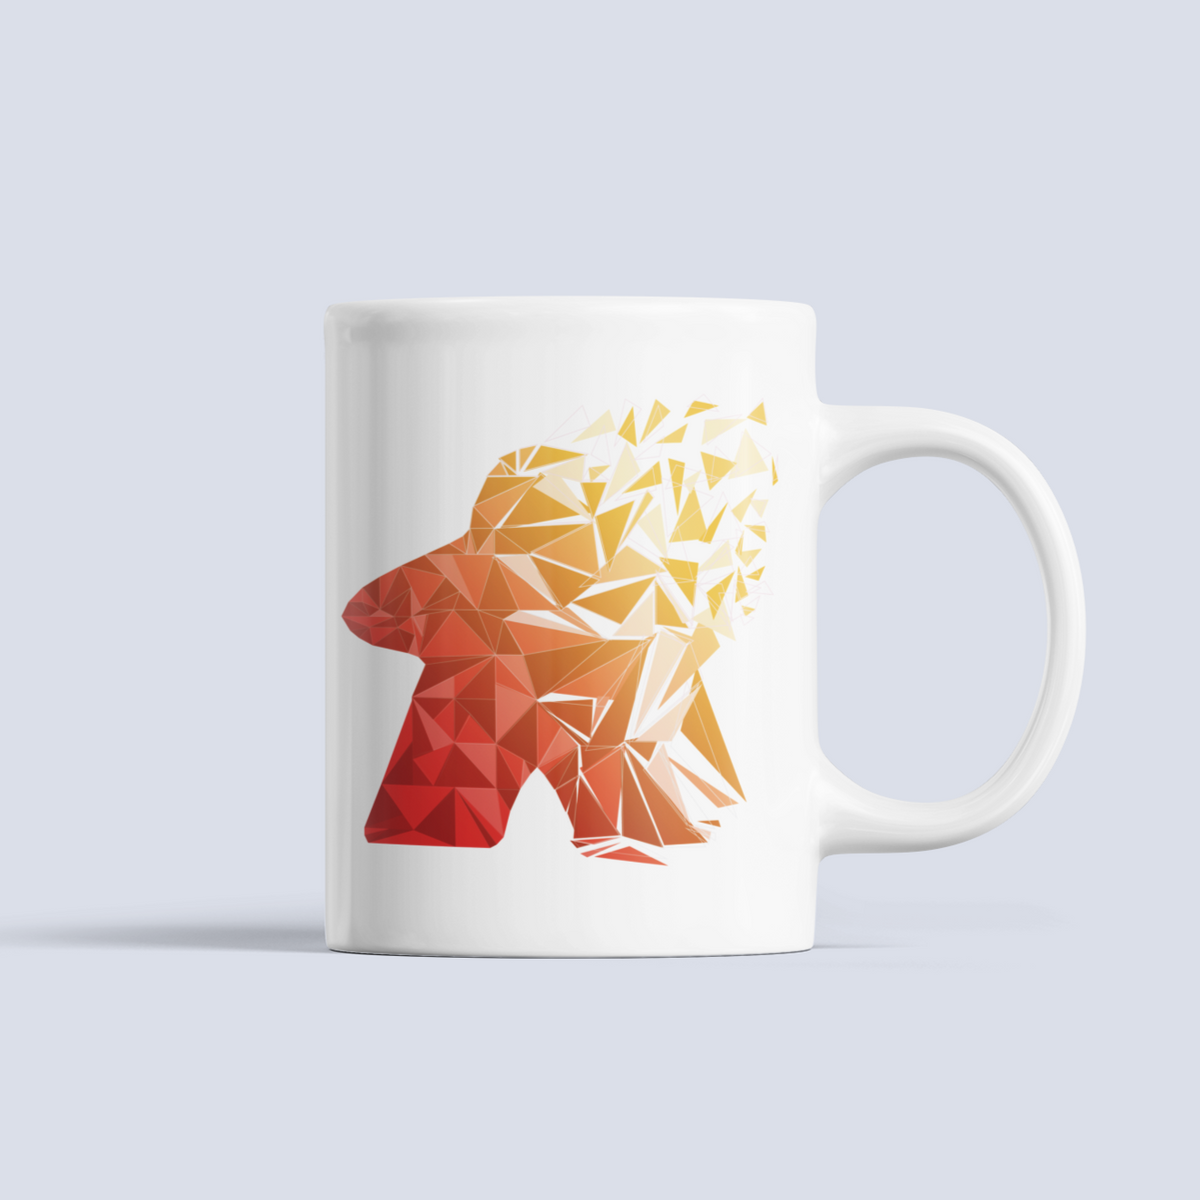 Warm Fragmented Meeple Board Game Ceramic Mug